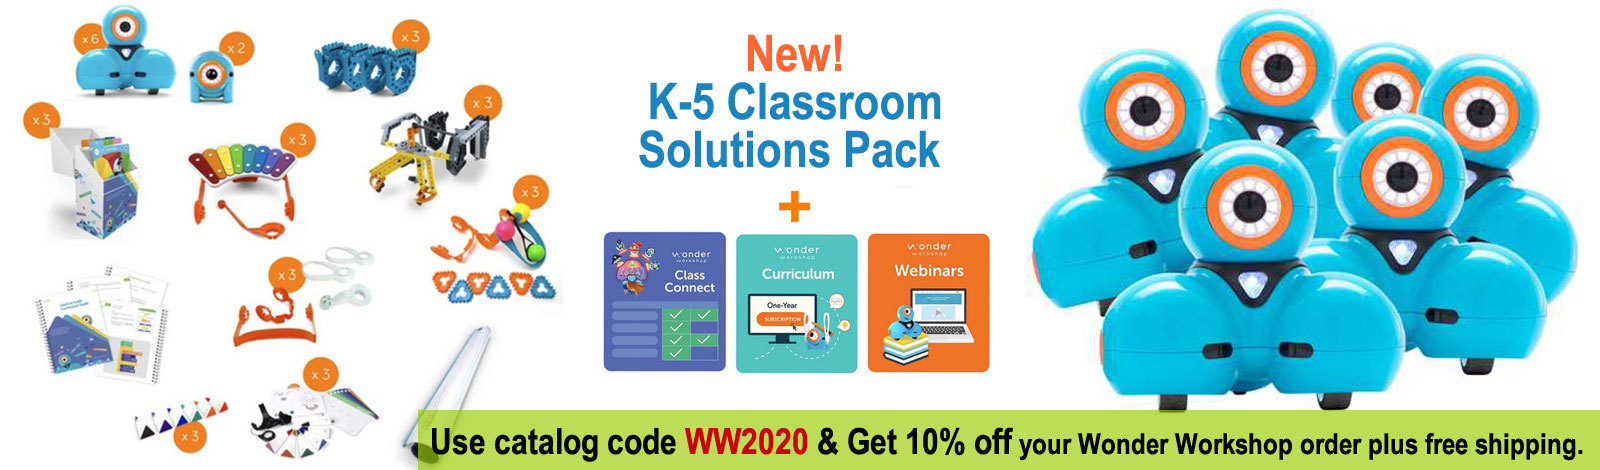 K-5 Classroom Solution Pack - New!